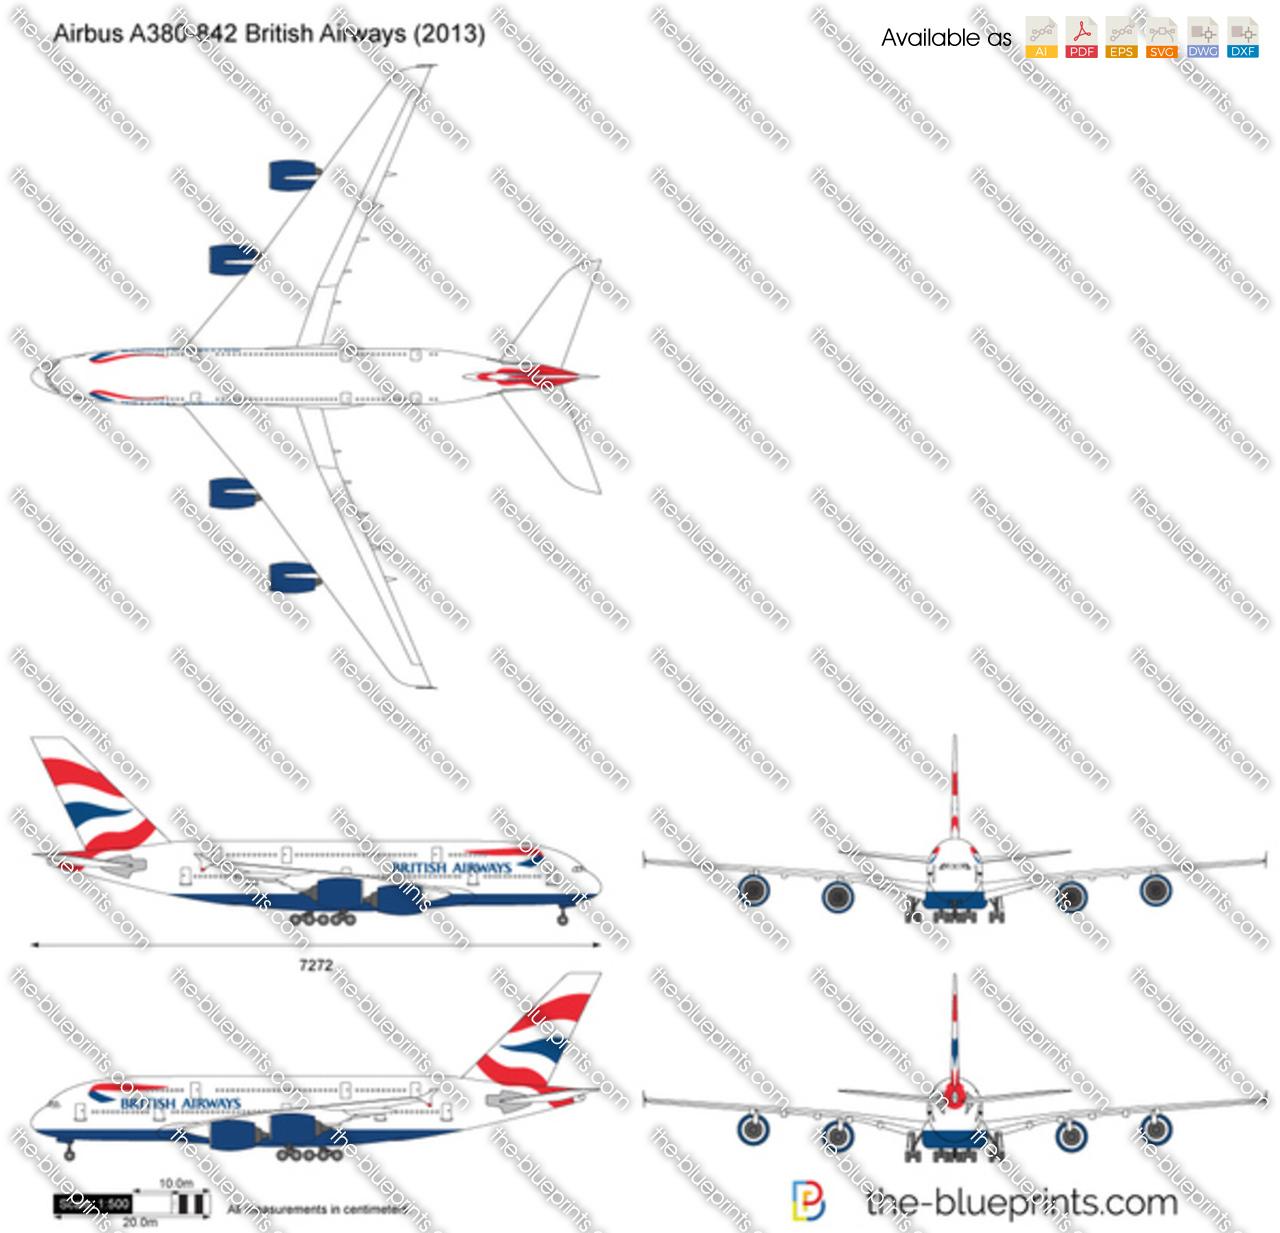 2013 Airbus A380-842 British Airways